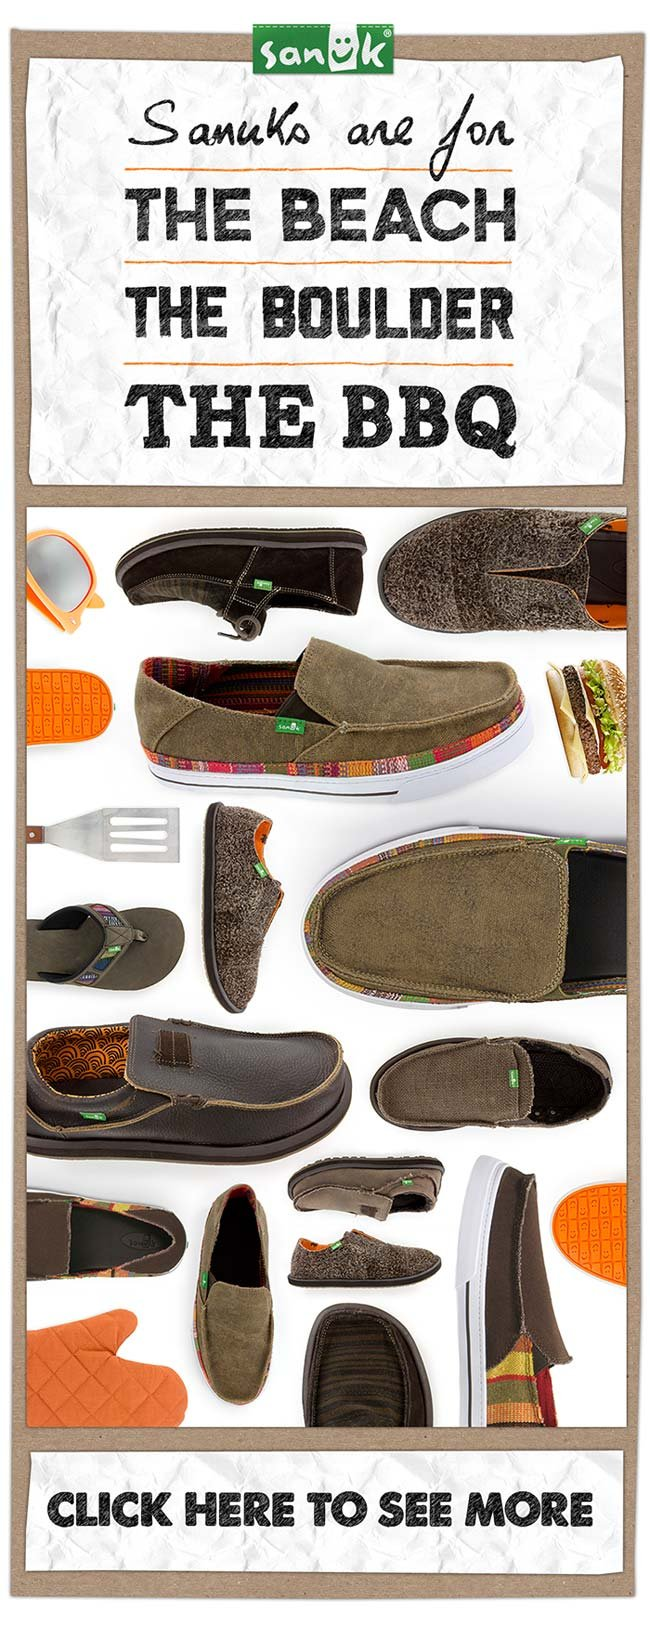 SANUKS ARE FOR THE BEACH, THE BOULDER, THE BBQ - CLICK HERE TO SEE MORE